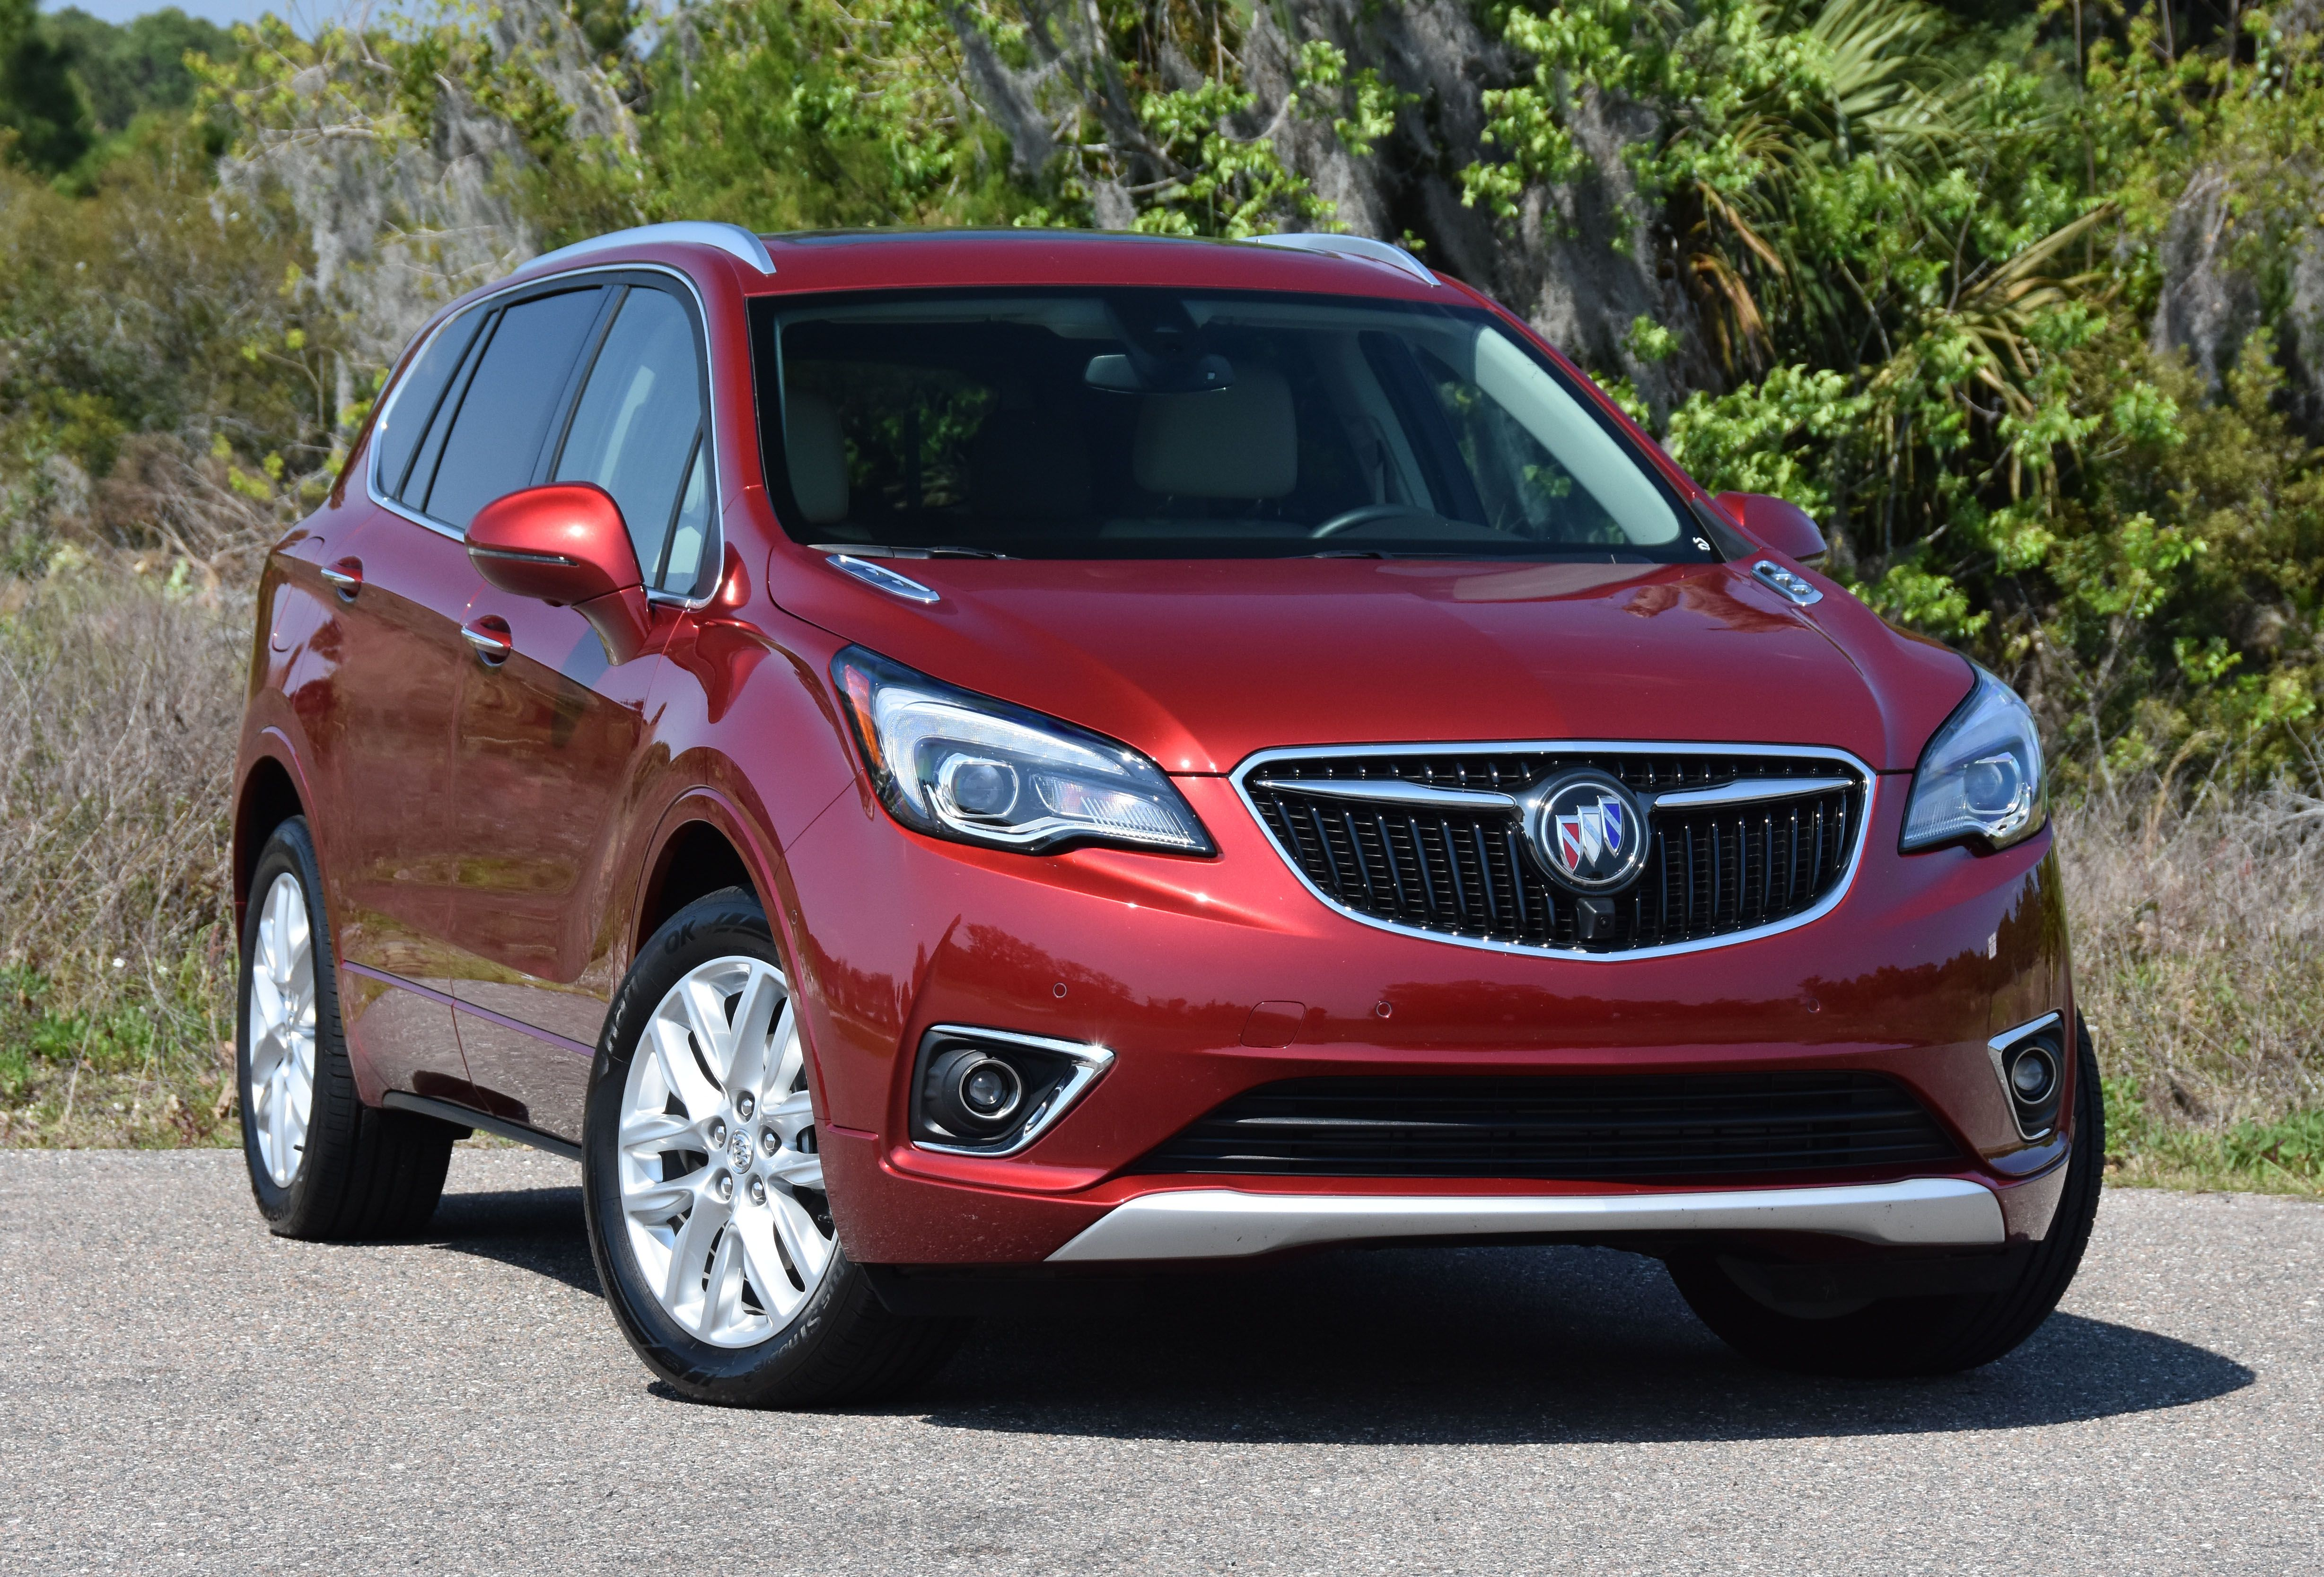 2019 Buick Envision Premium Ii 2 0t Awd Review Test Drive Buick Envision Buick Driving Test